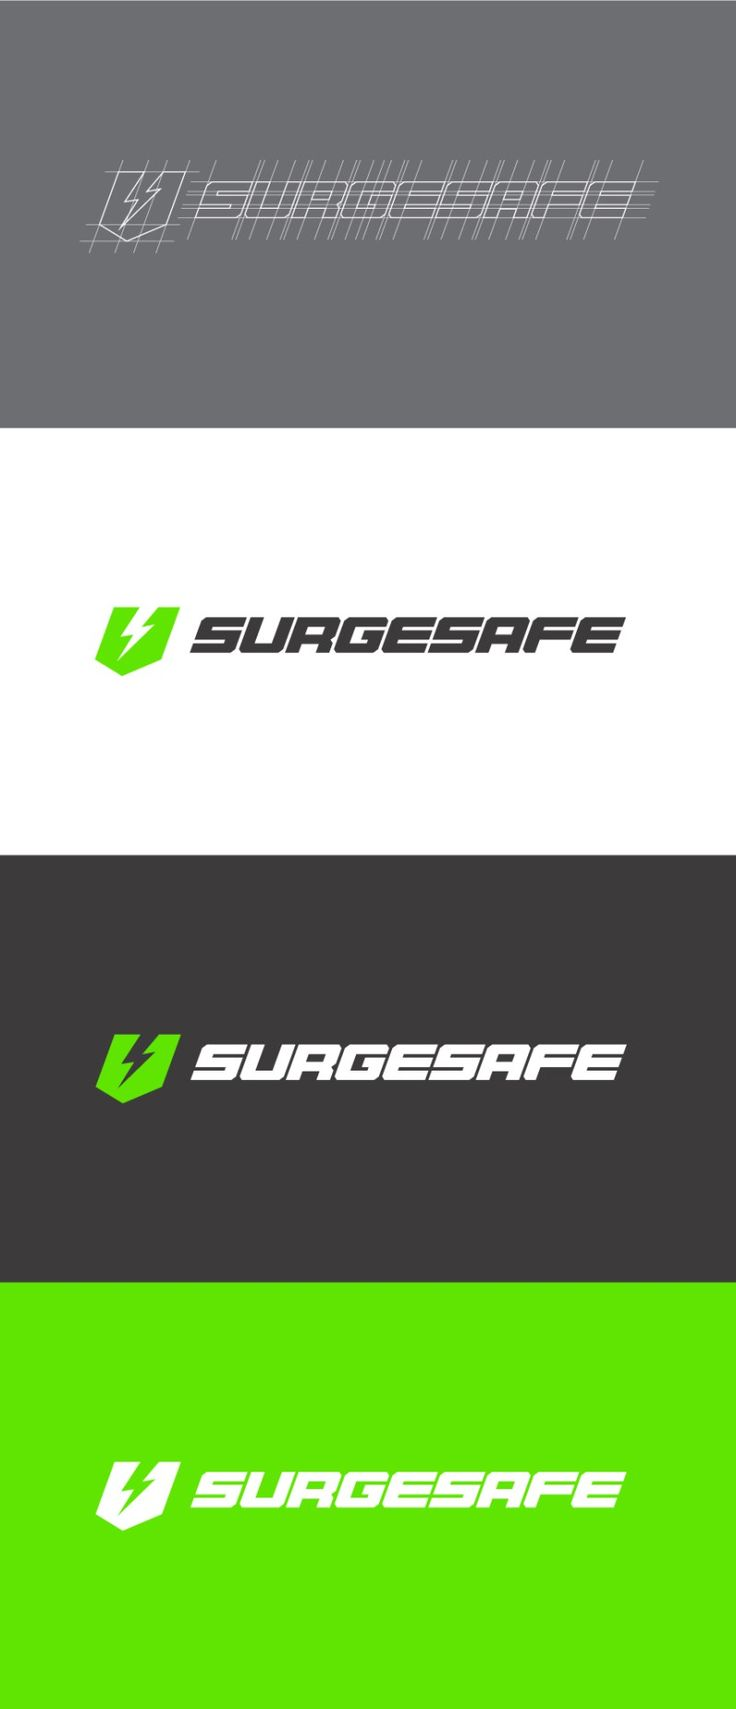 Logomark and logotype breakdown/process for Surgesafe Electrical Testand Tag in Perth, designed by Robot Eats Popcorn. #logo #logoprocess #graphicdesign #branding #logotype #logomark